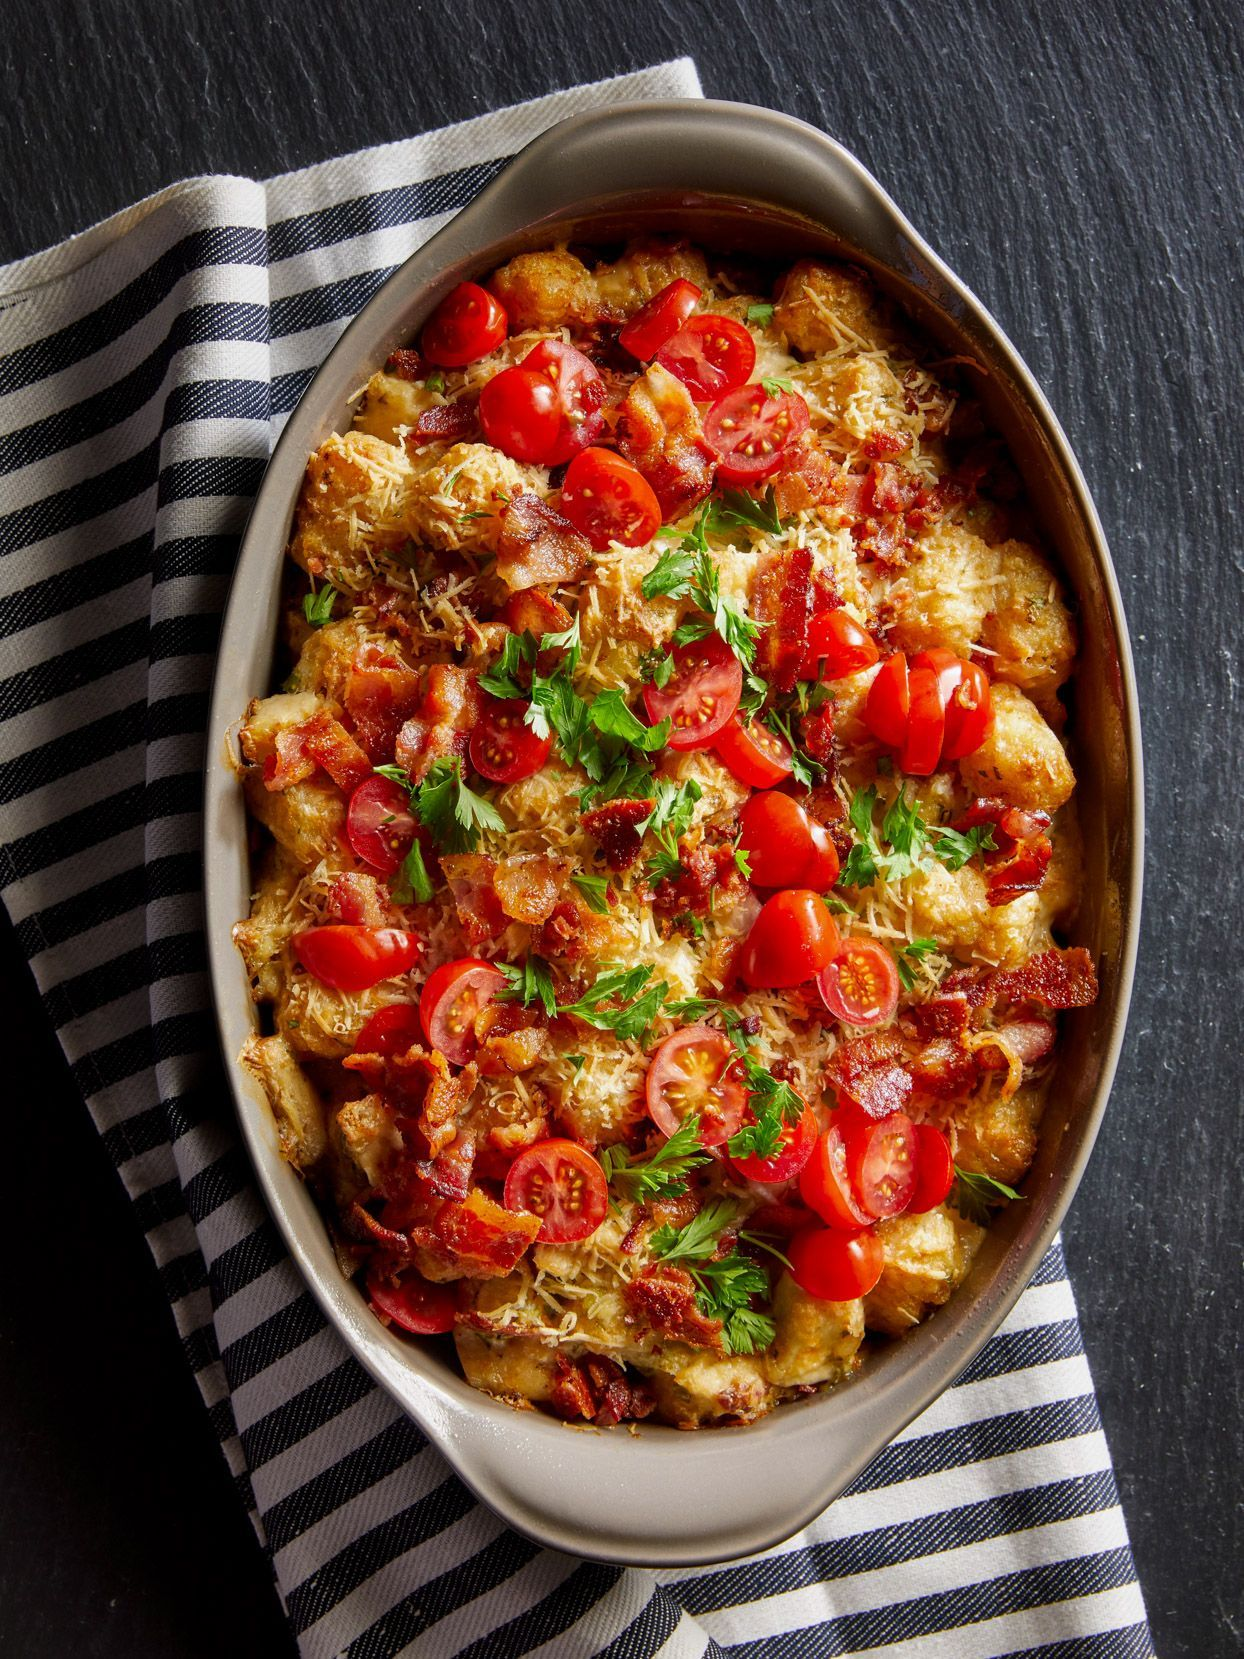 These Were Our 10 Most Popular Casserole Recipes On Pinterest In 2020 Popular Casseroles Recipes Casserole Recipes